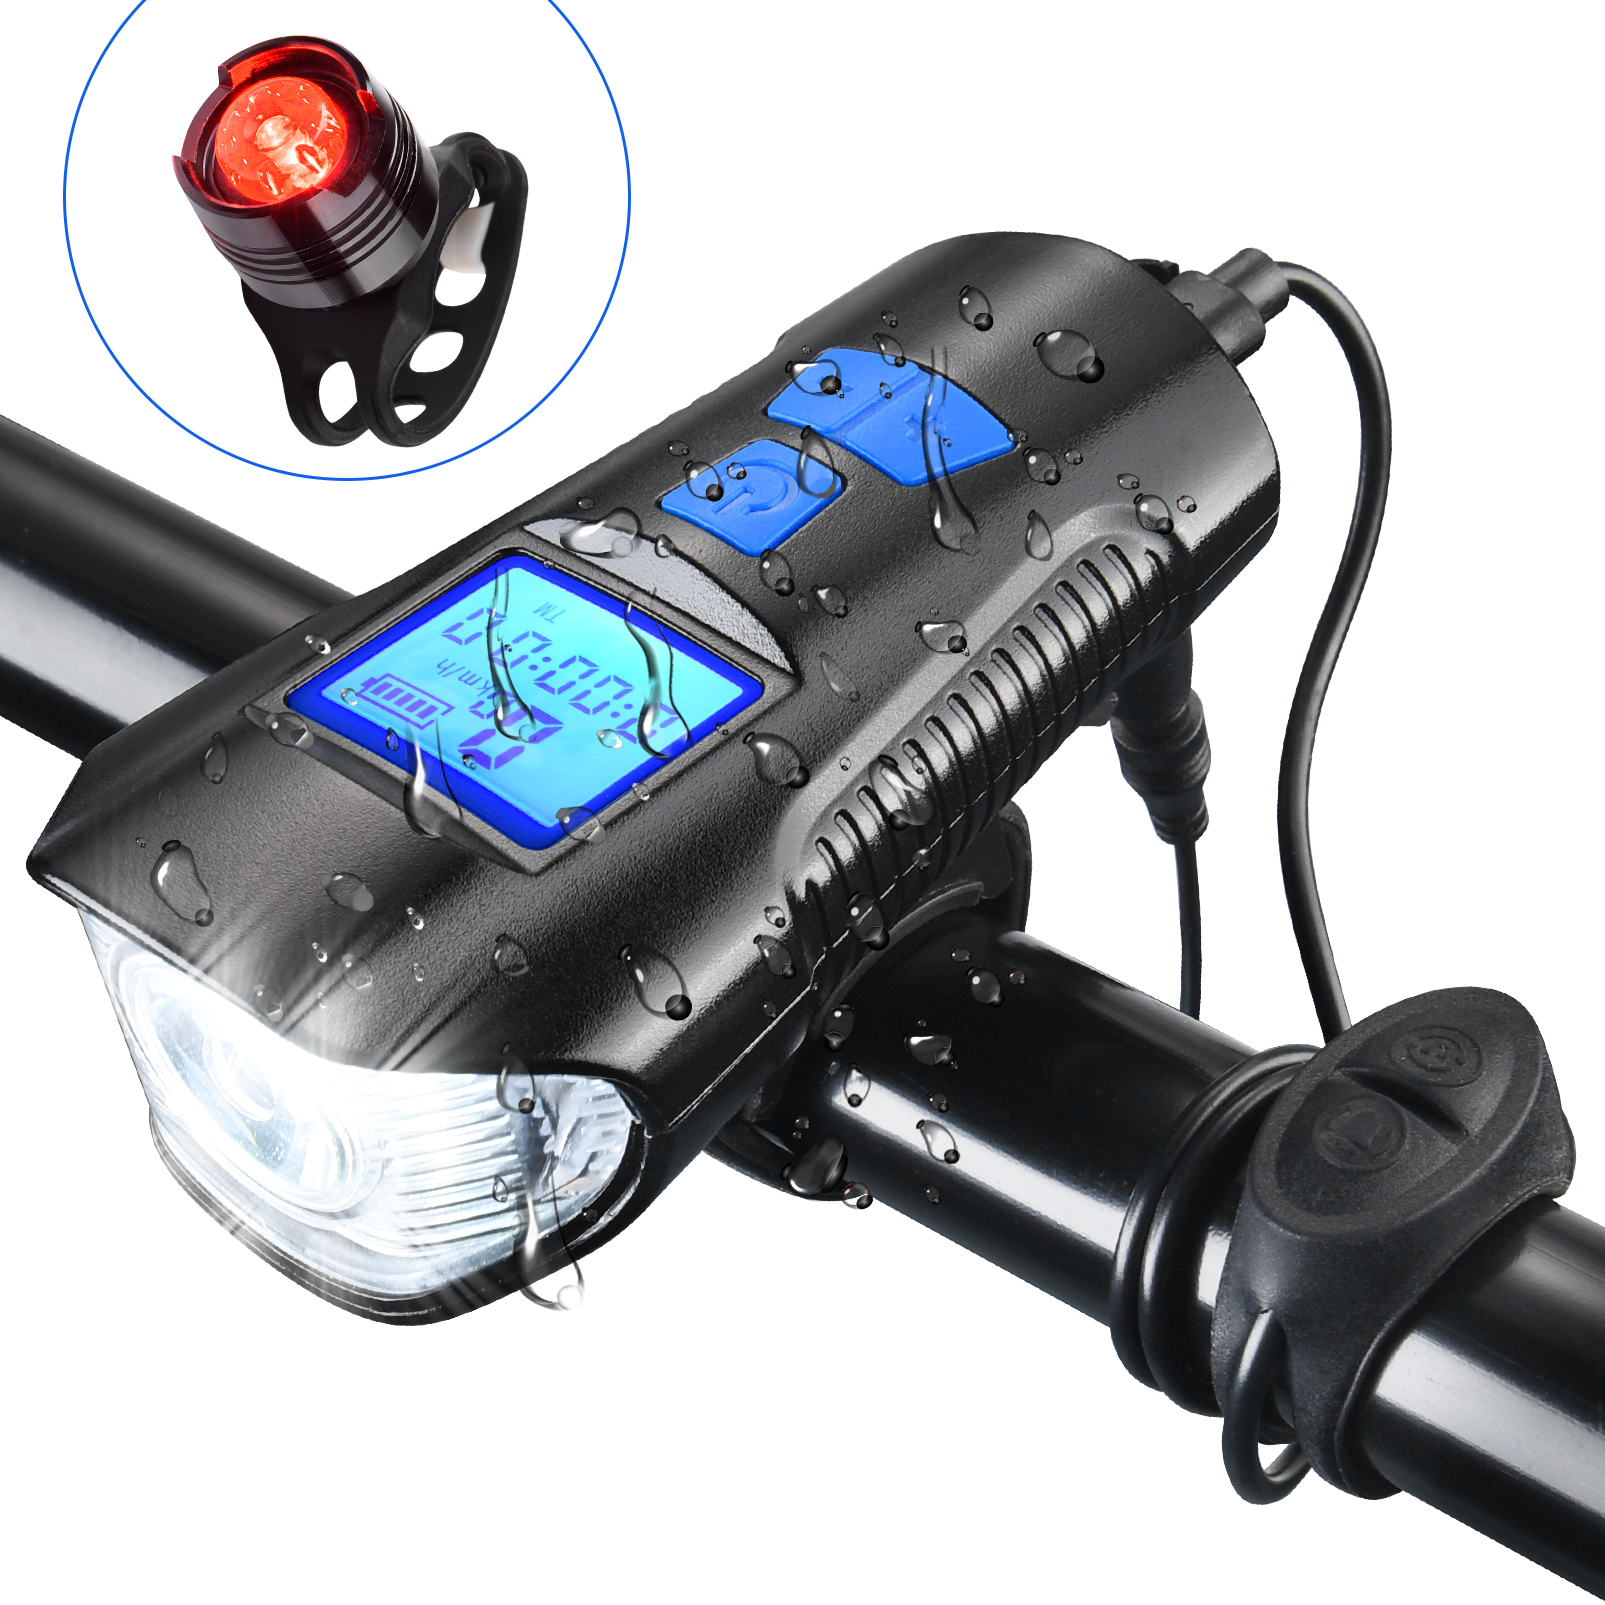 Details about  / USB Rechargeable Bike Light Set,Super Bright Front Headlight and Rear LED